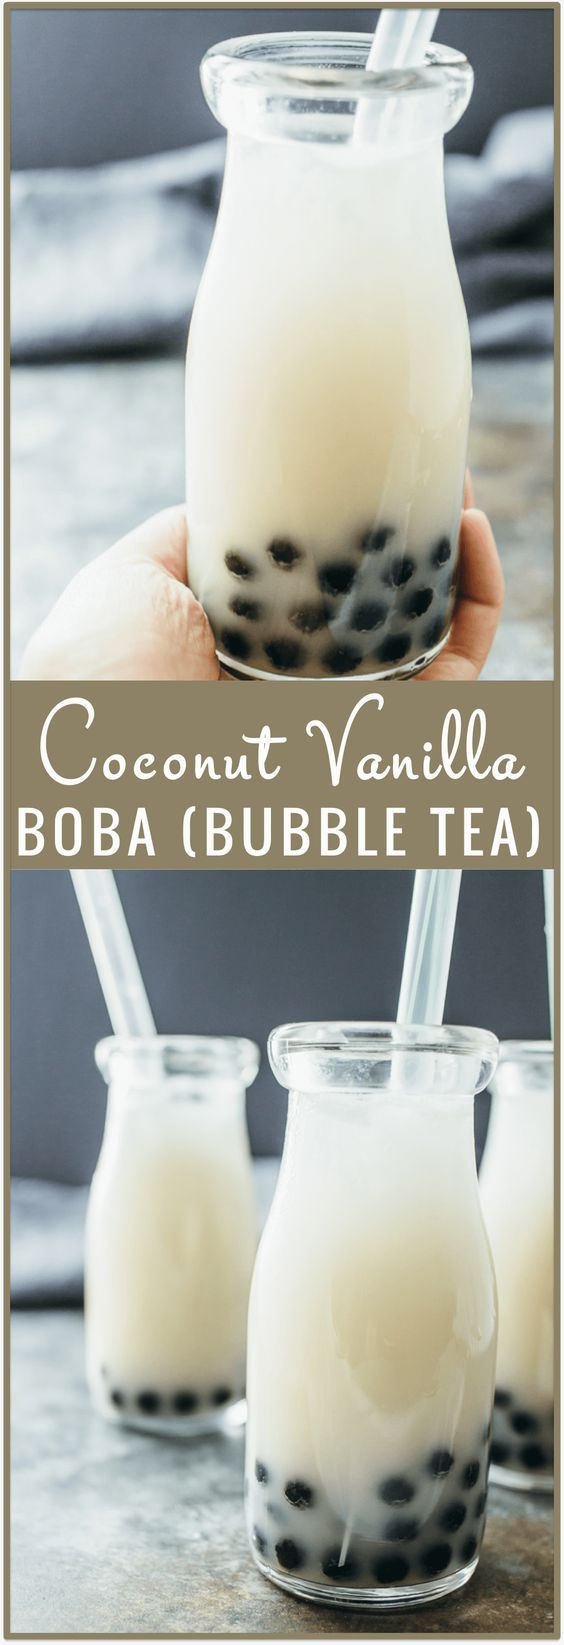 Coconut vanilla boba (bubble tea) - Ever wonder how to make boba (bubble tea) at home? This recipe shows you how to make boba with coconut and vanilla flavors using home-cooked tapioca pearls! You don't need many supplies/ingredients to end up with this very refreshing drink. - savorytooth.com via @savory_tooth